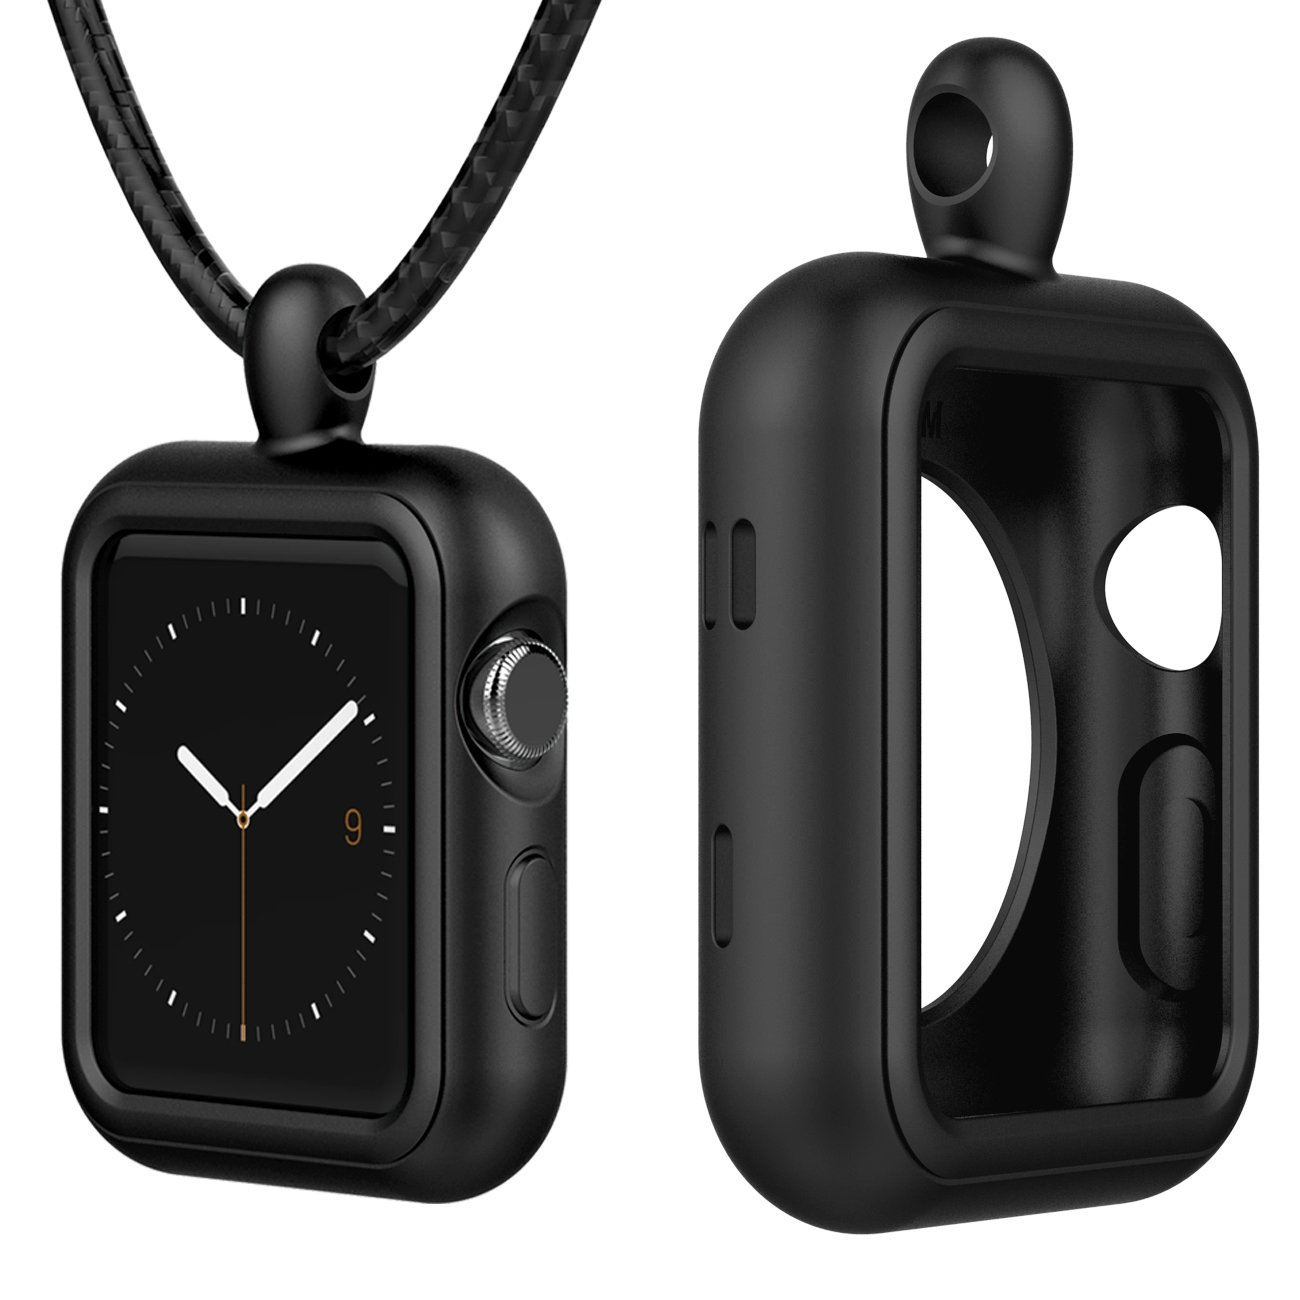 Lwsengme Compatible with Apple Watch Pendent Case with Necklace Clip, Replacement Accessories Compatible with Apple iWatch Series 3/2/ 1/Nike+ 38mm,42mm